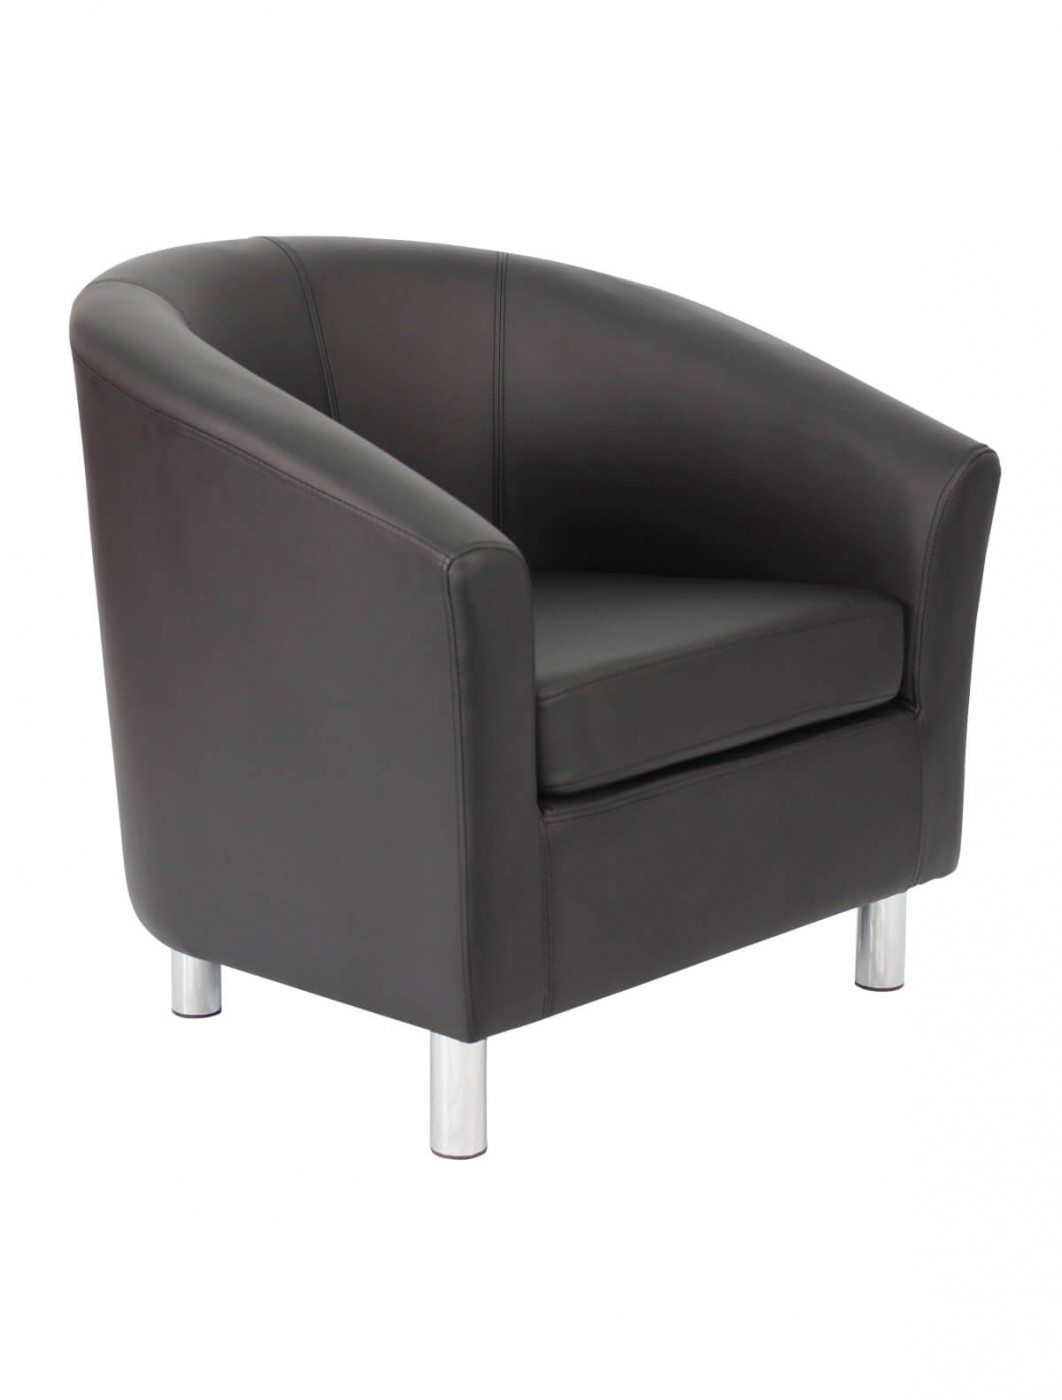 Tub Chairs Armchair Pu Leather Tub Chair Of2201ml Reception Chairs